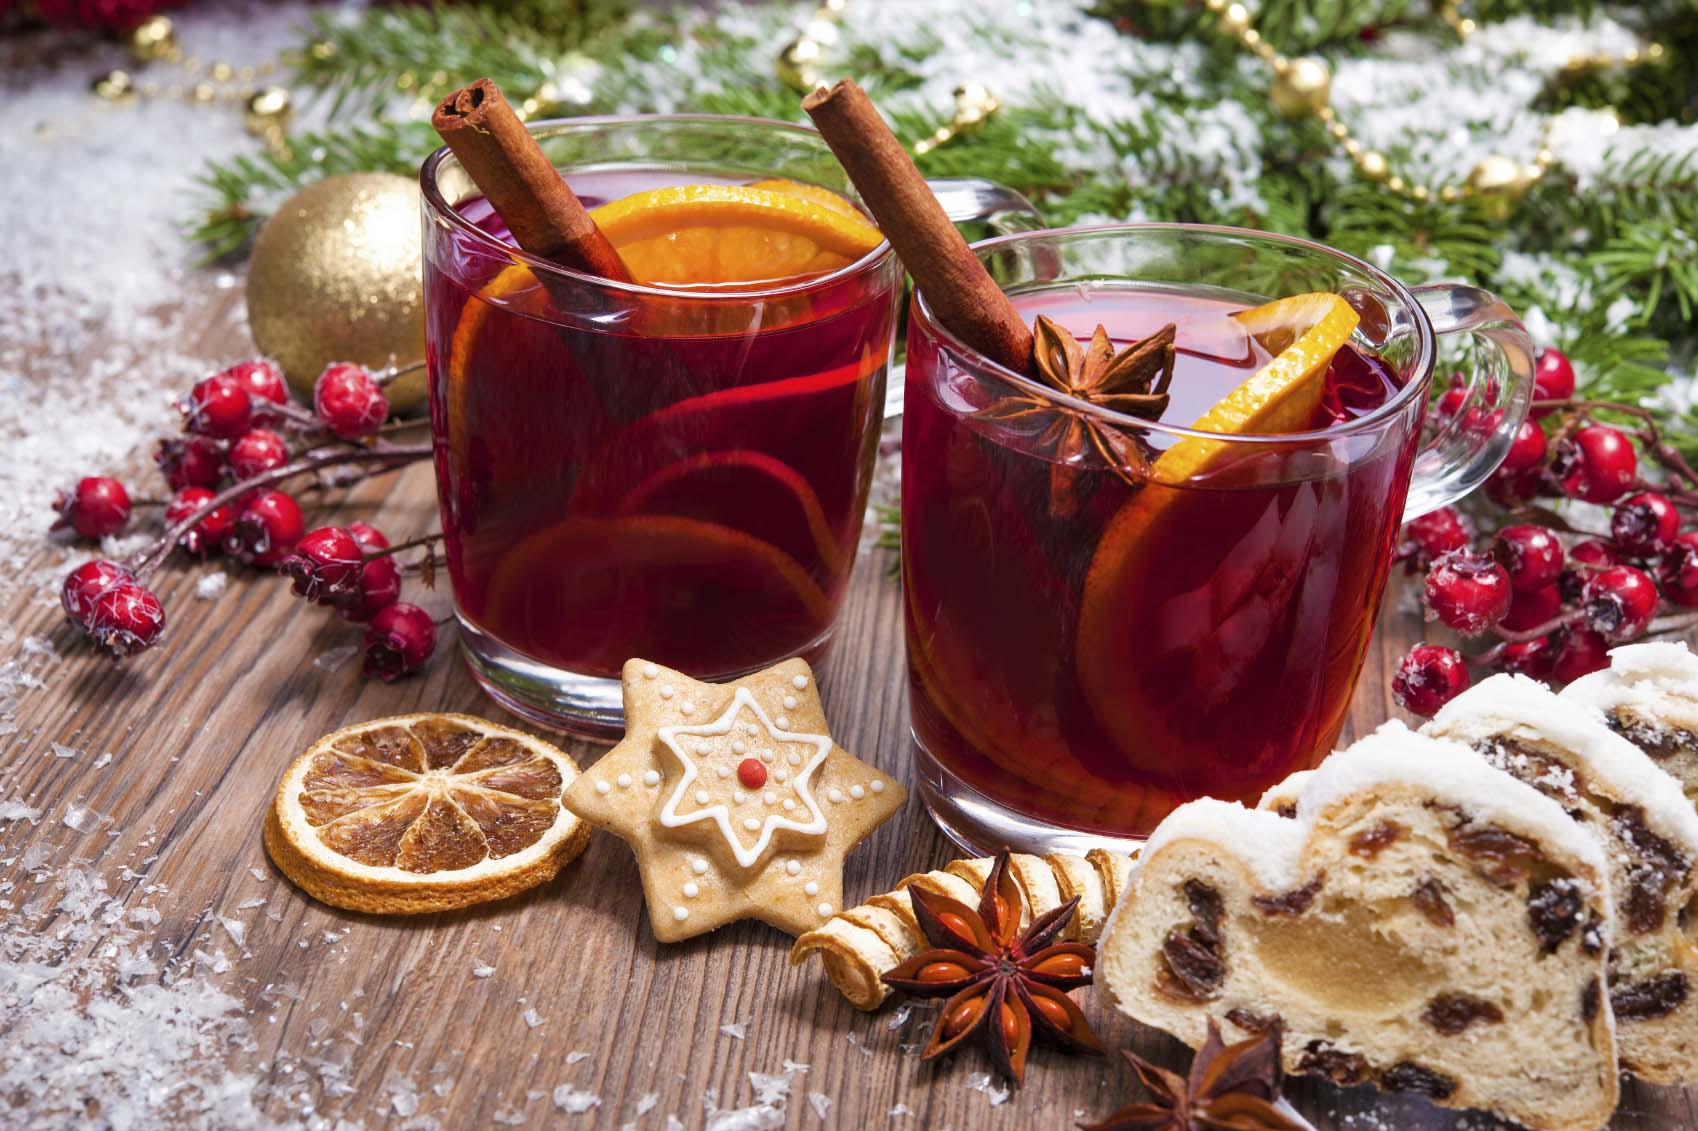 Two glasses of mulled wine and slices of stollen